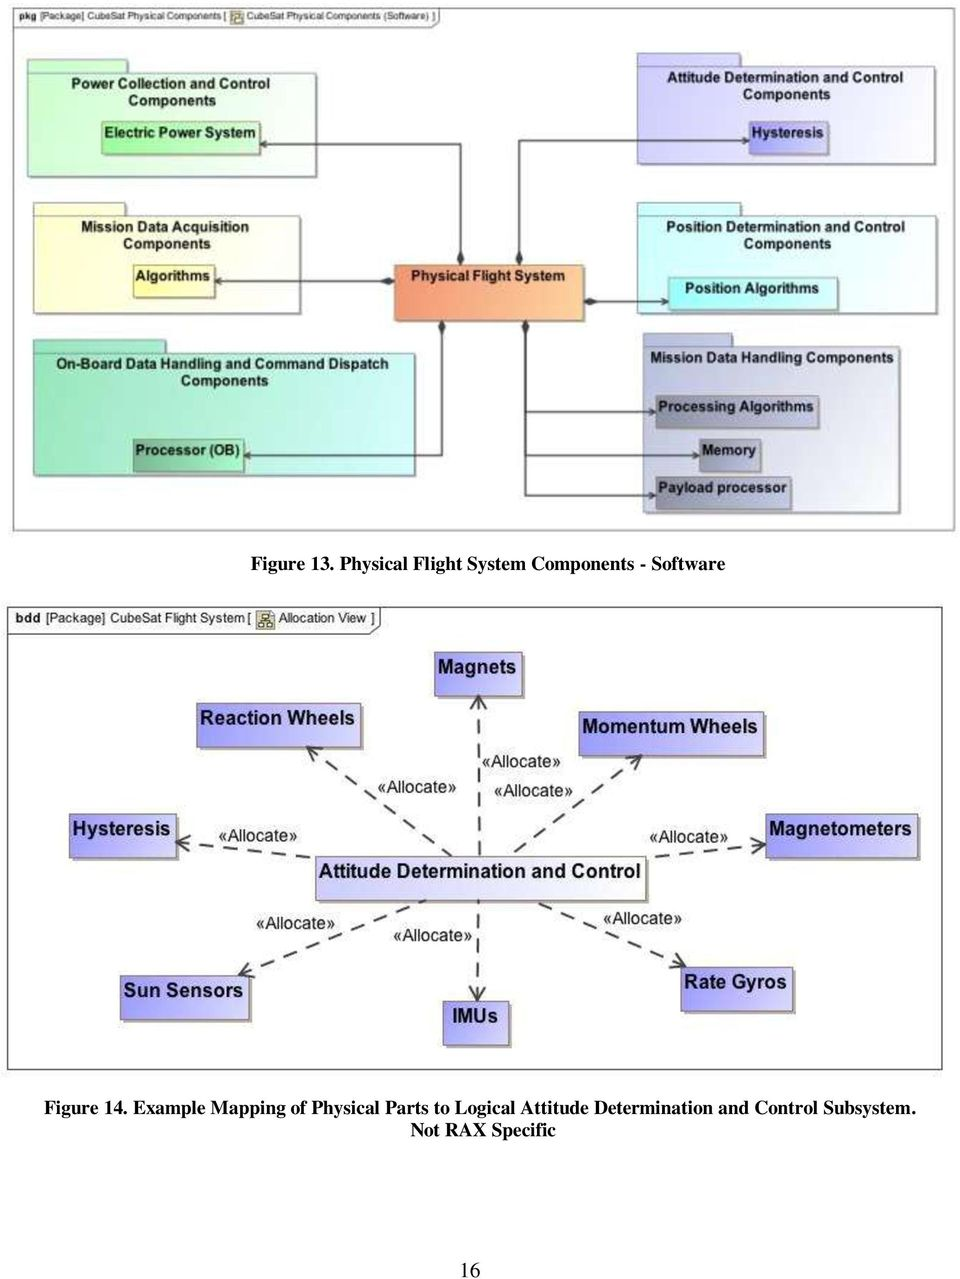 Applying Model Based Systems Engineering (MBSE) to a